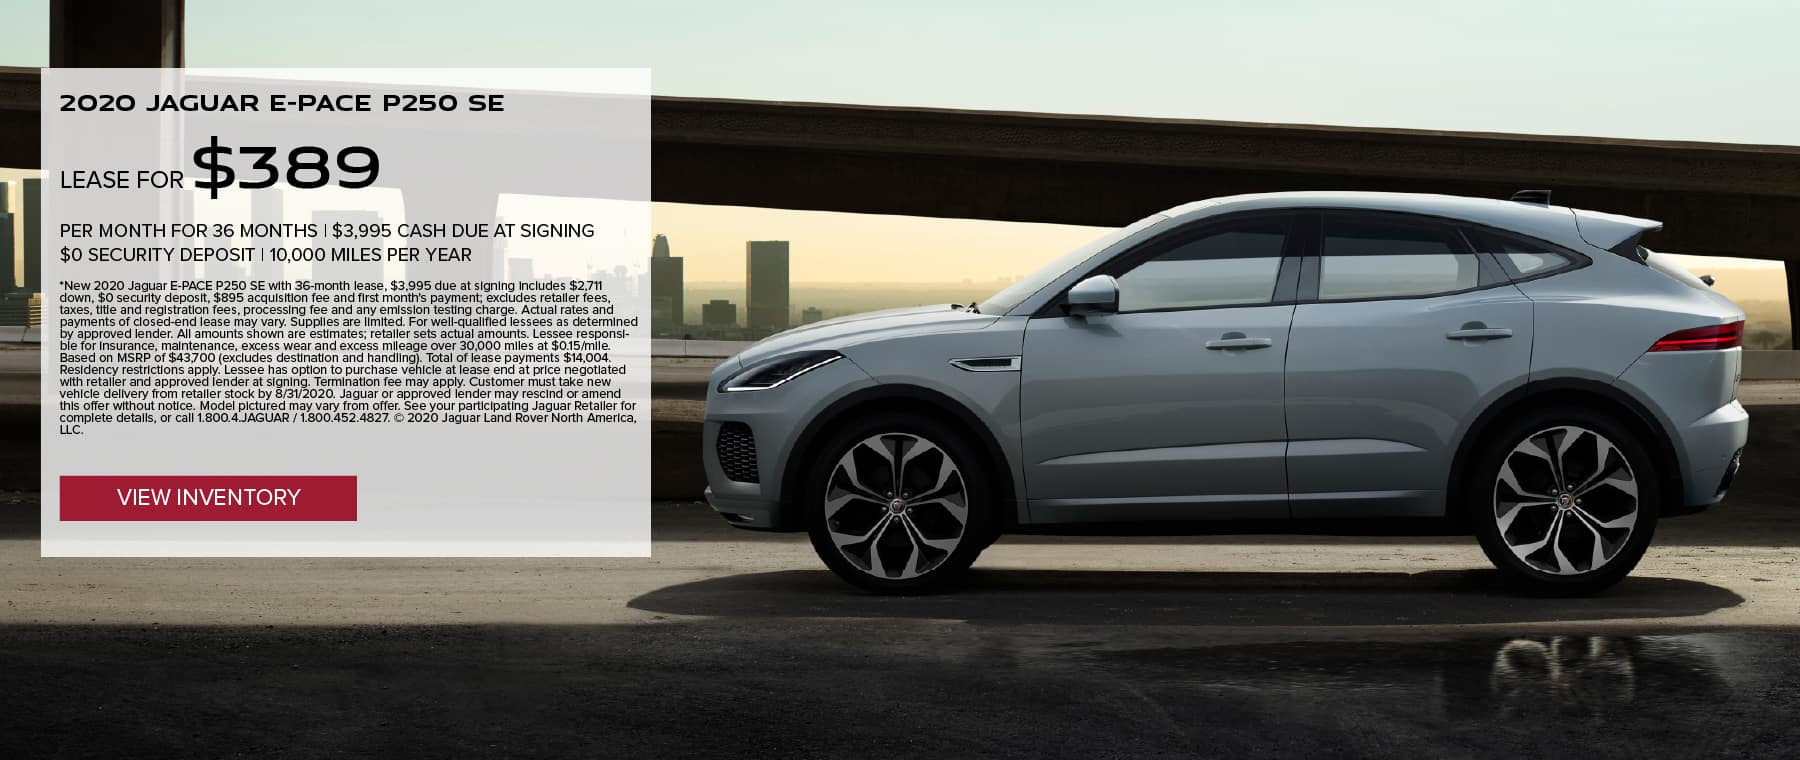 2020 JAGUAR E-PACE P250 SE. $389 PER MONTH. 36 MONTH LEASE TERM. $3,995 CASH DUE AT SIGNING. $0 SECURITY DEPOSIT. 10,000 MILES PER YEAR. EXCLUDES RETAILER FEES, TAXES, TITLE AND REGISTRATION FEES, PROCESSING FEE AND ANY EMISSION TESTING CHARGE. OFFER ENDS 8/31/2020. VIEW INVENTORY. WHITE JAGUAR E-PACE DRIVING DOWN ROAD IN CITY.